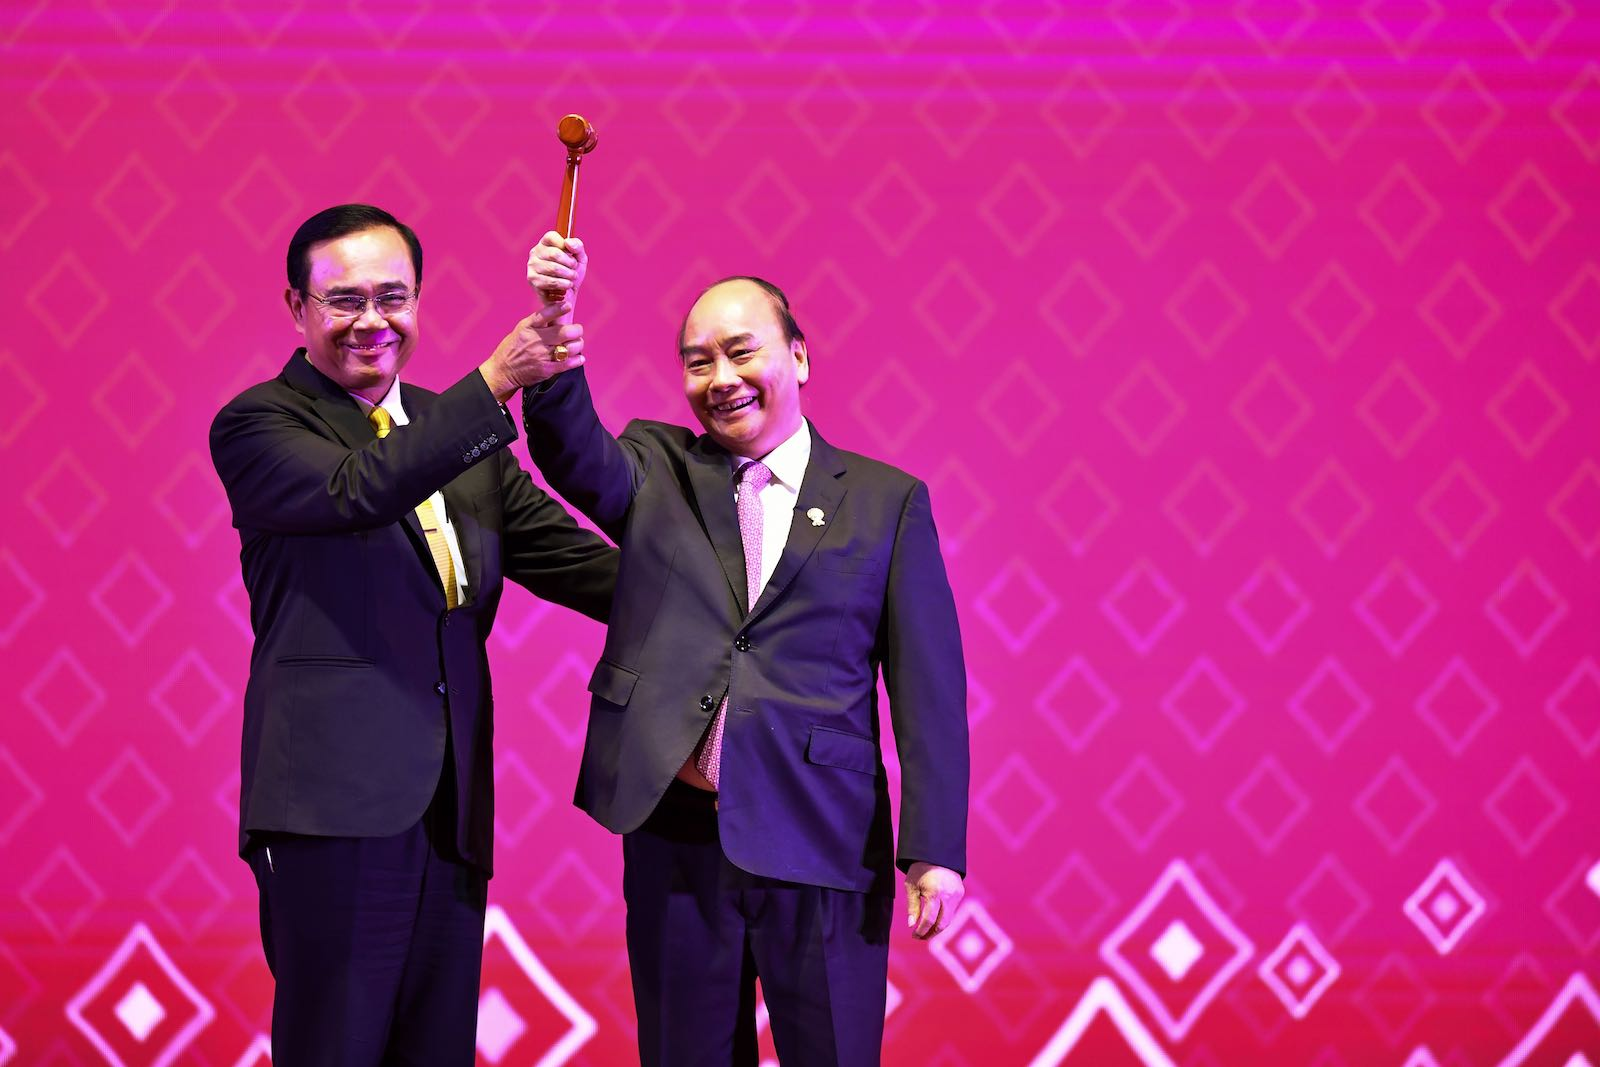 Vietnam's Prime Minister Nguyen Xuan Phuc raises the gavel as ASEAN chair for 2020 after a handover from Thailand's Prayut Chan-O-Cha (Photo: Lillian Suwanrumpha/AFP/Getty Images)